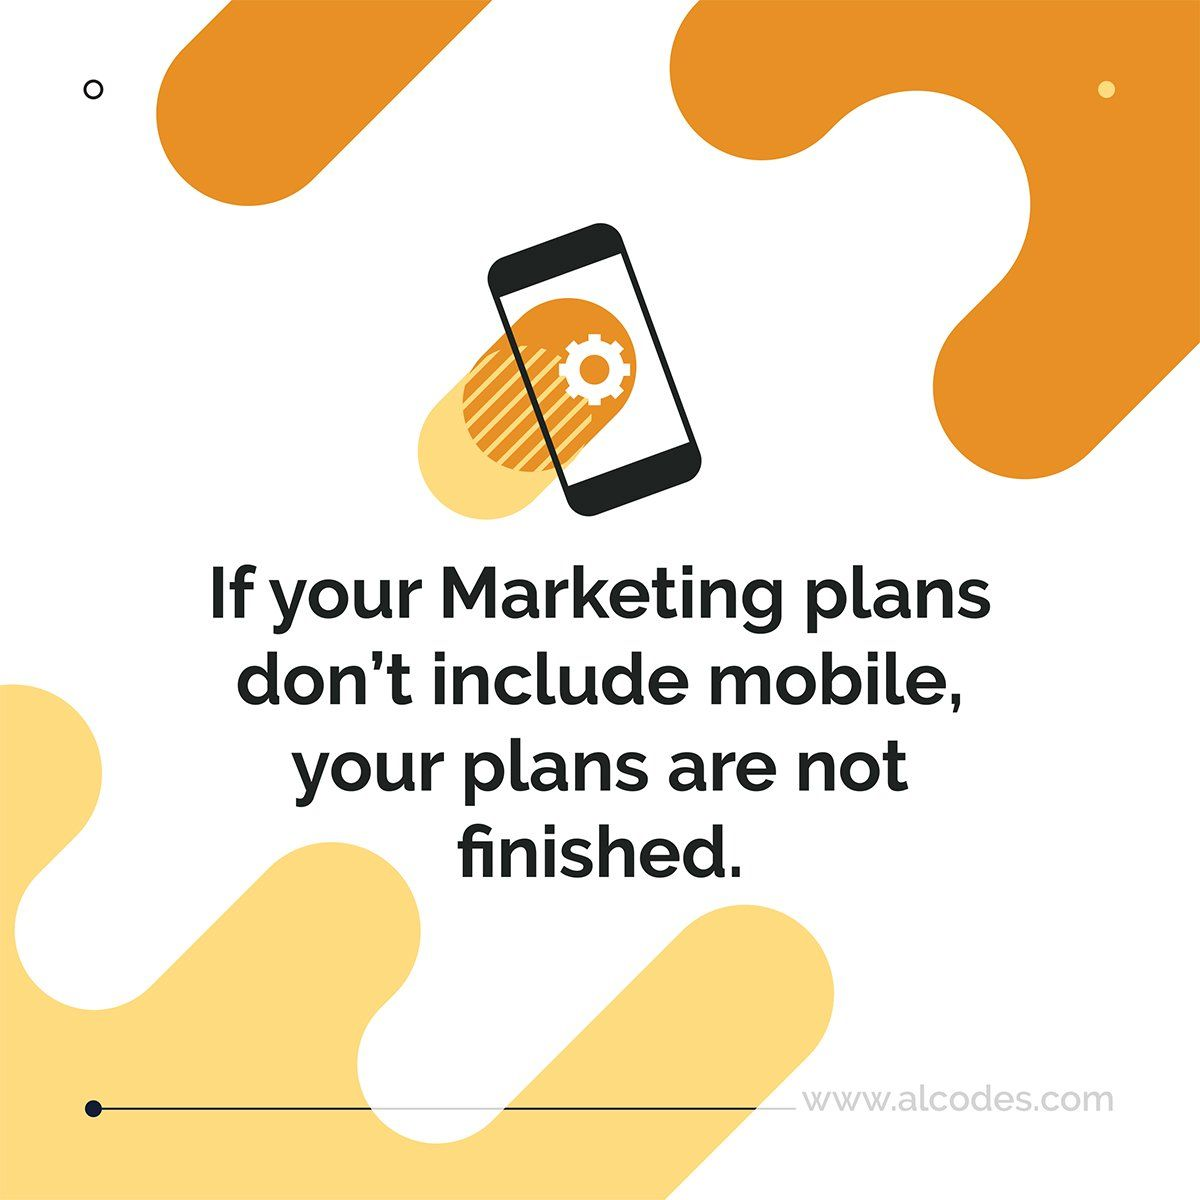 Add Bulk #sms in your marketing plans and target #mobile users